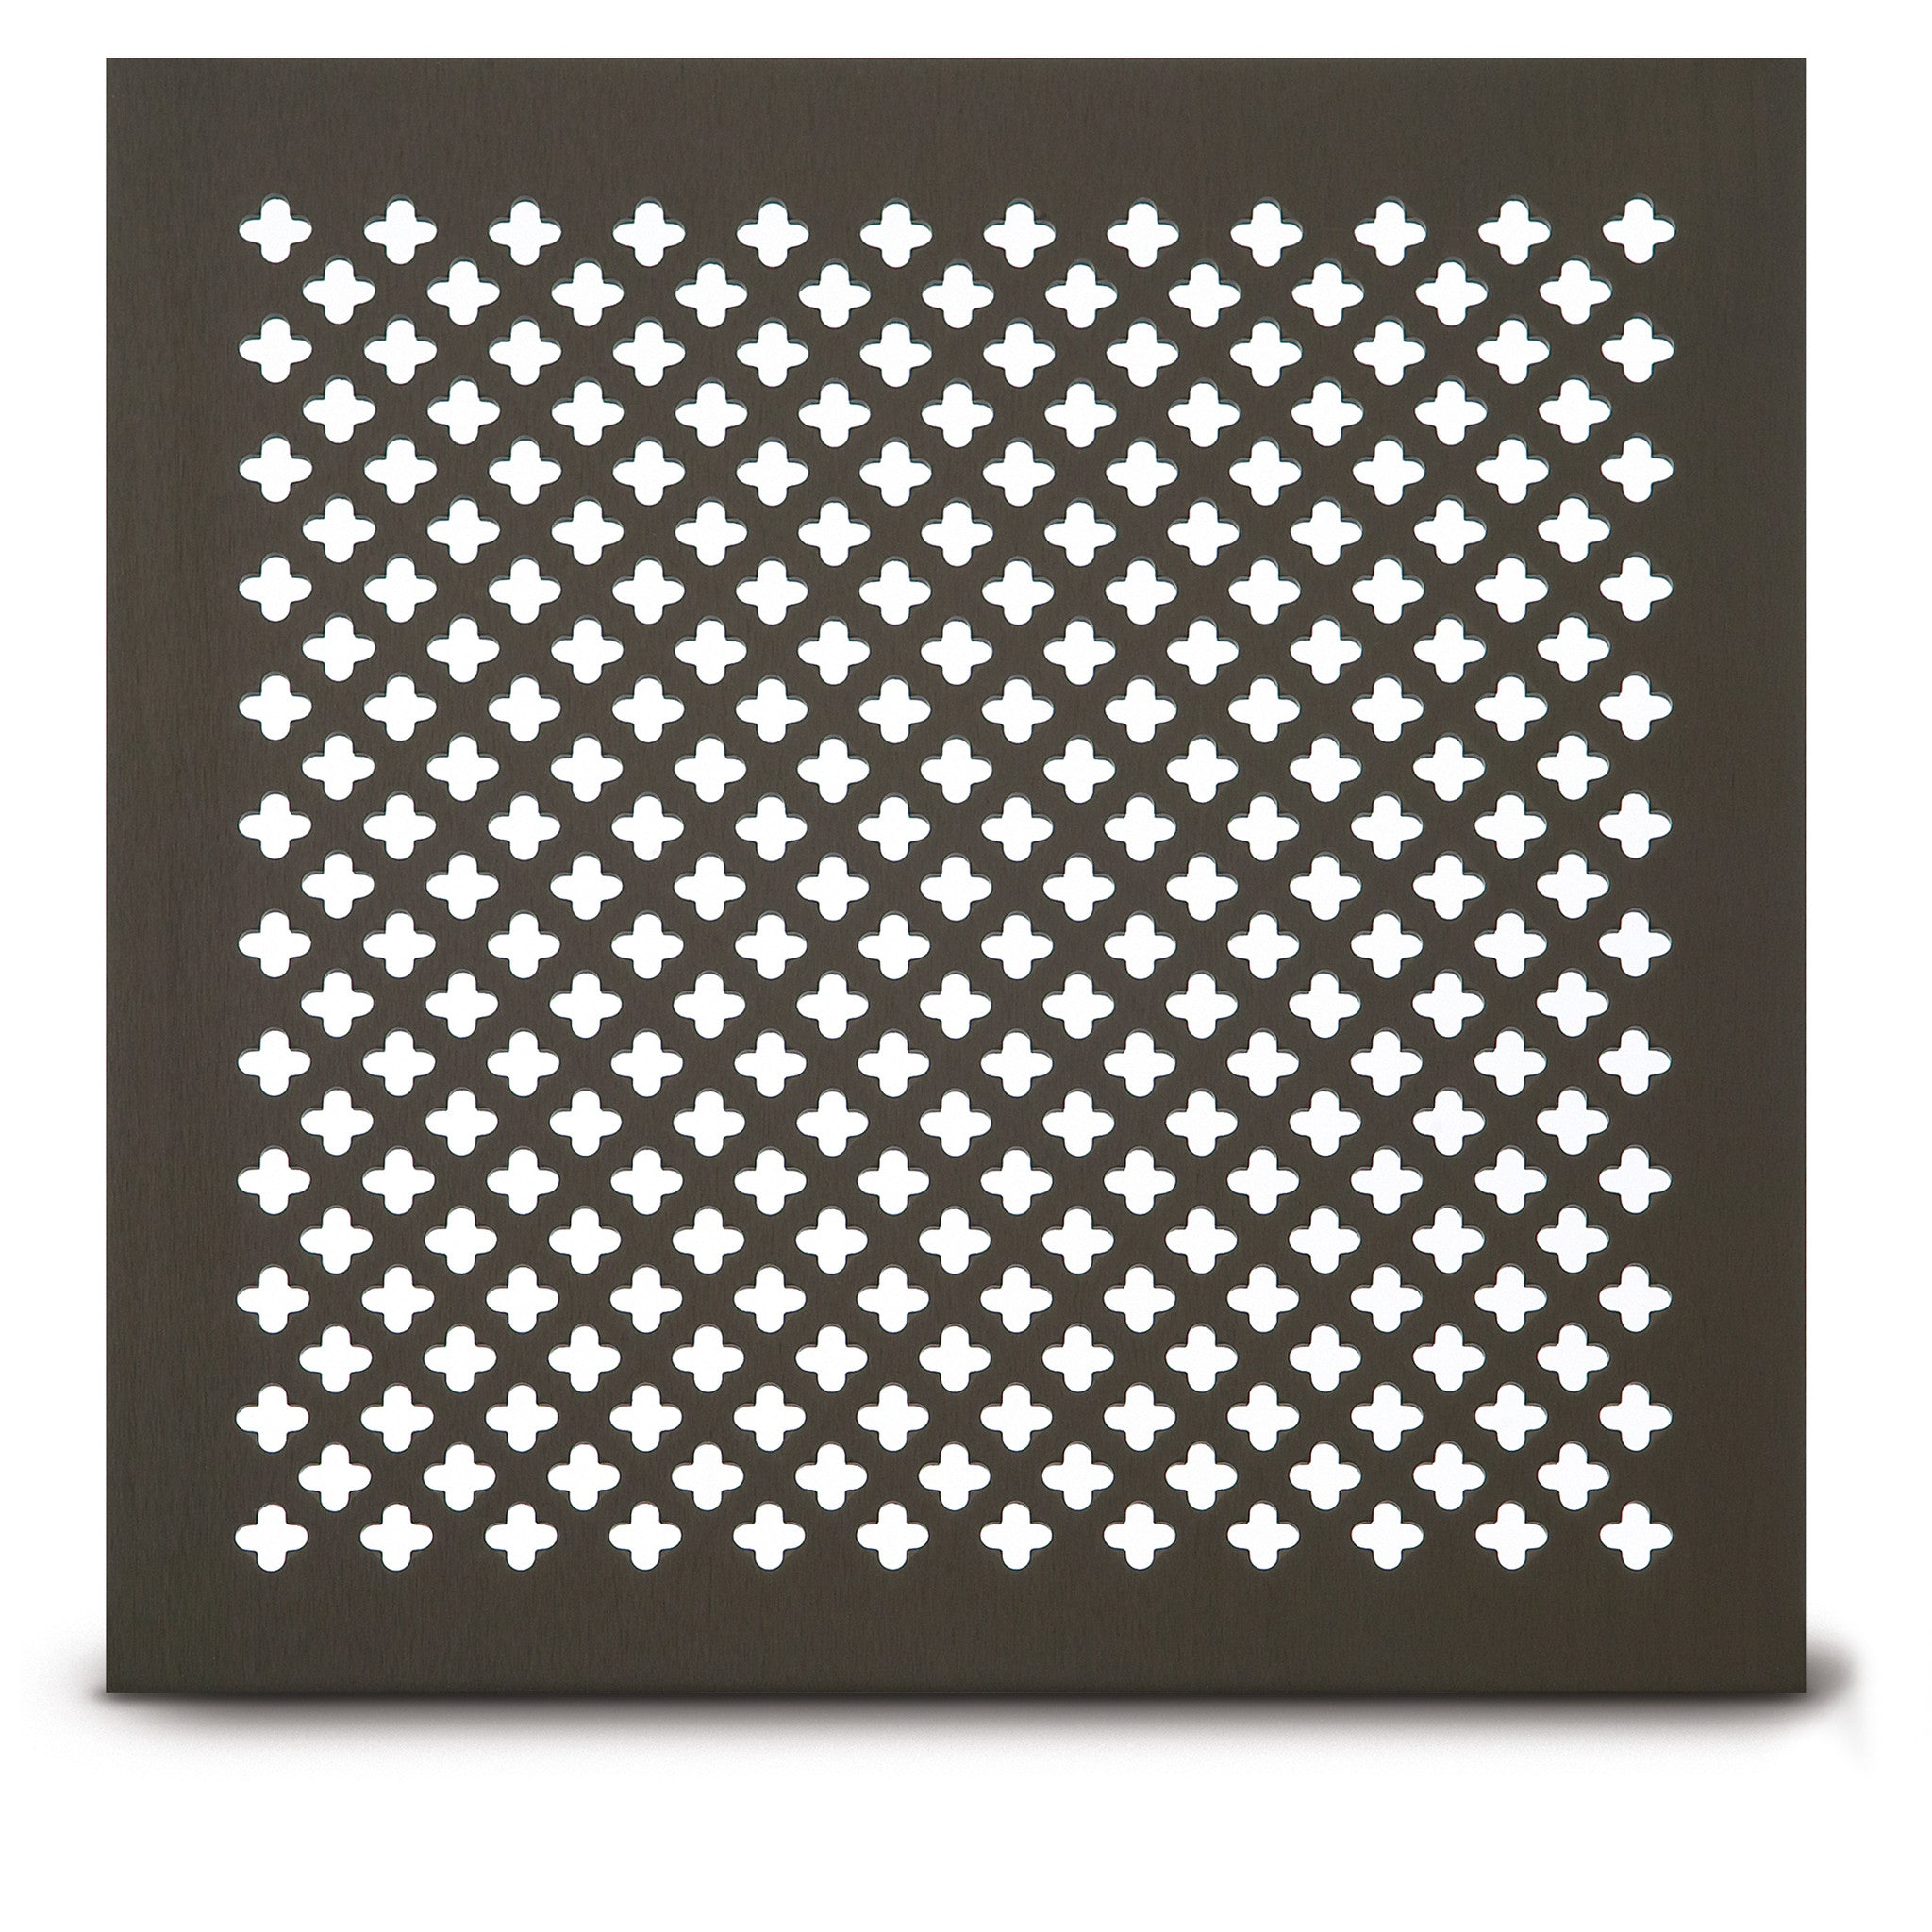 204 Clover Leaf Perforated Grille Architectural Grille